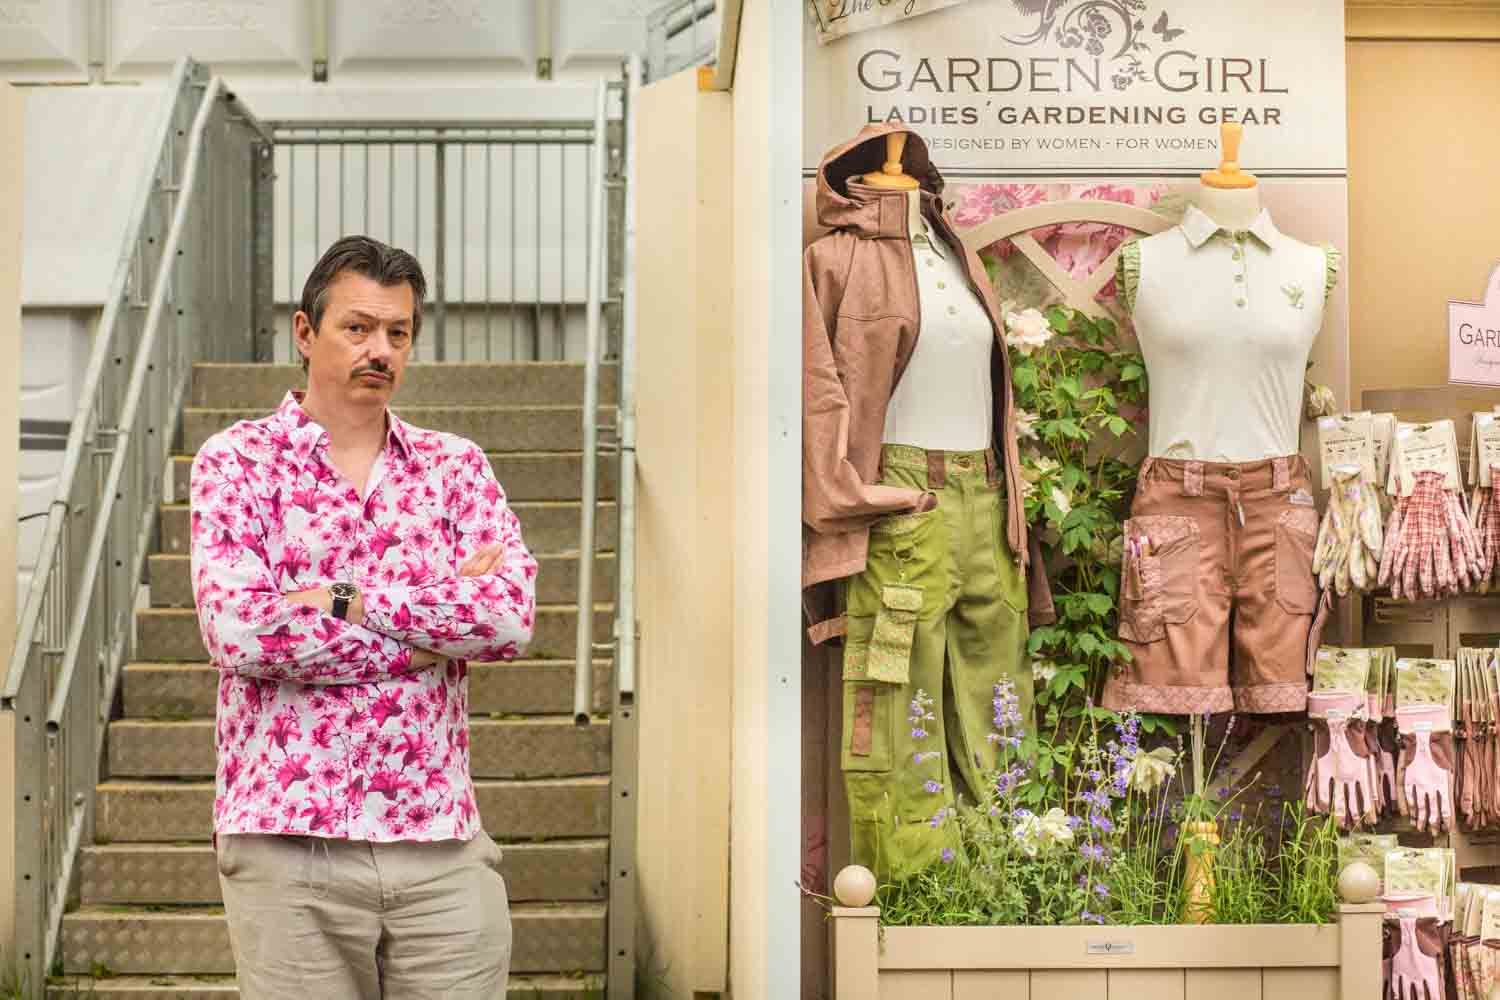 Man in pink floral shirt at RHS Chelsea Flower Show 2014